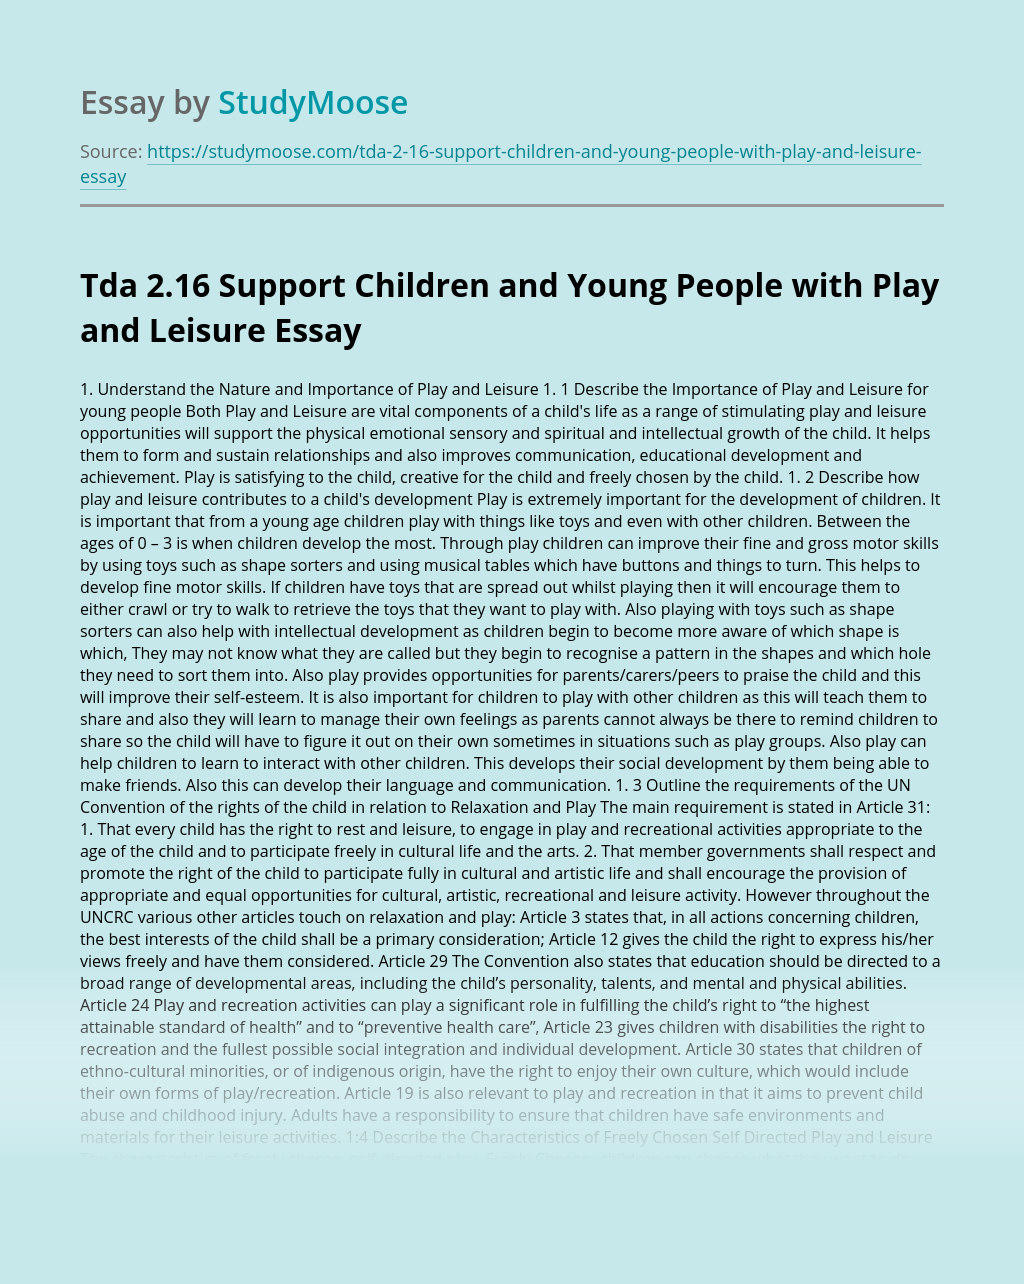 Tda 2.16 Support Children and Young People with Play and Leisure